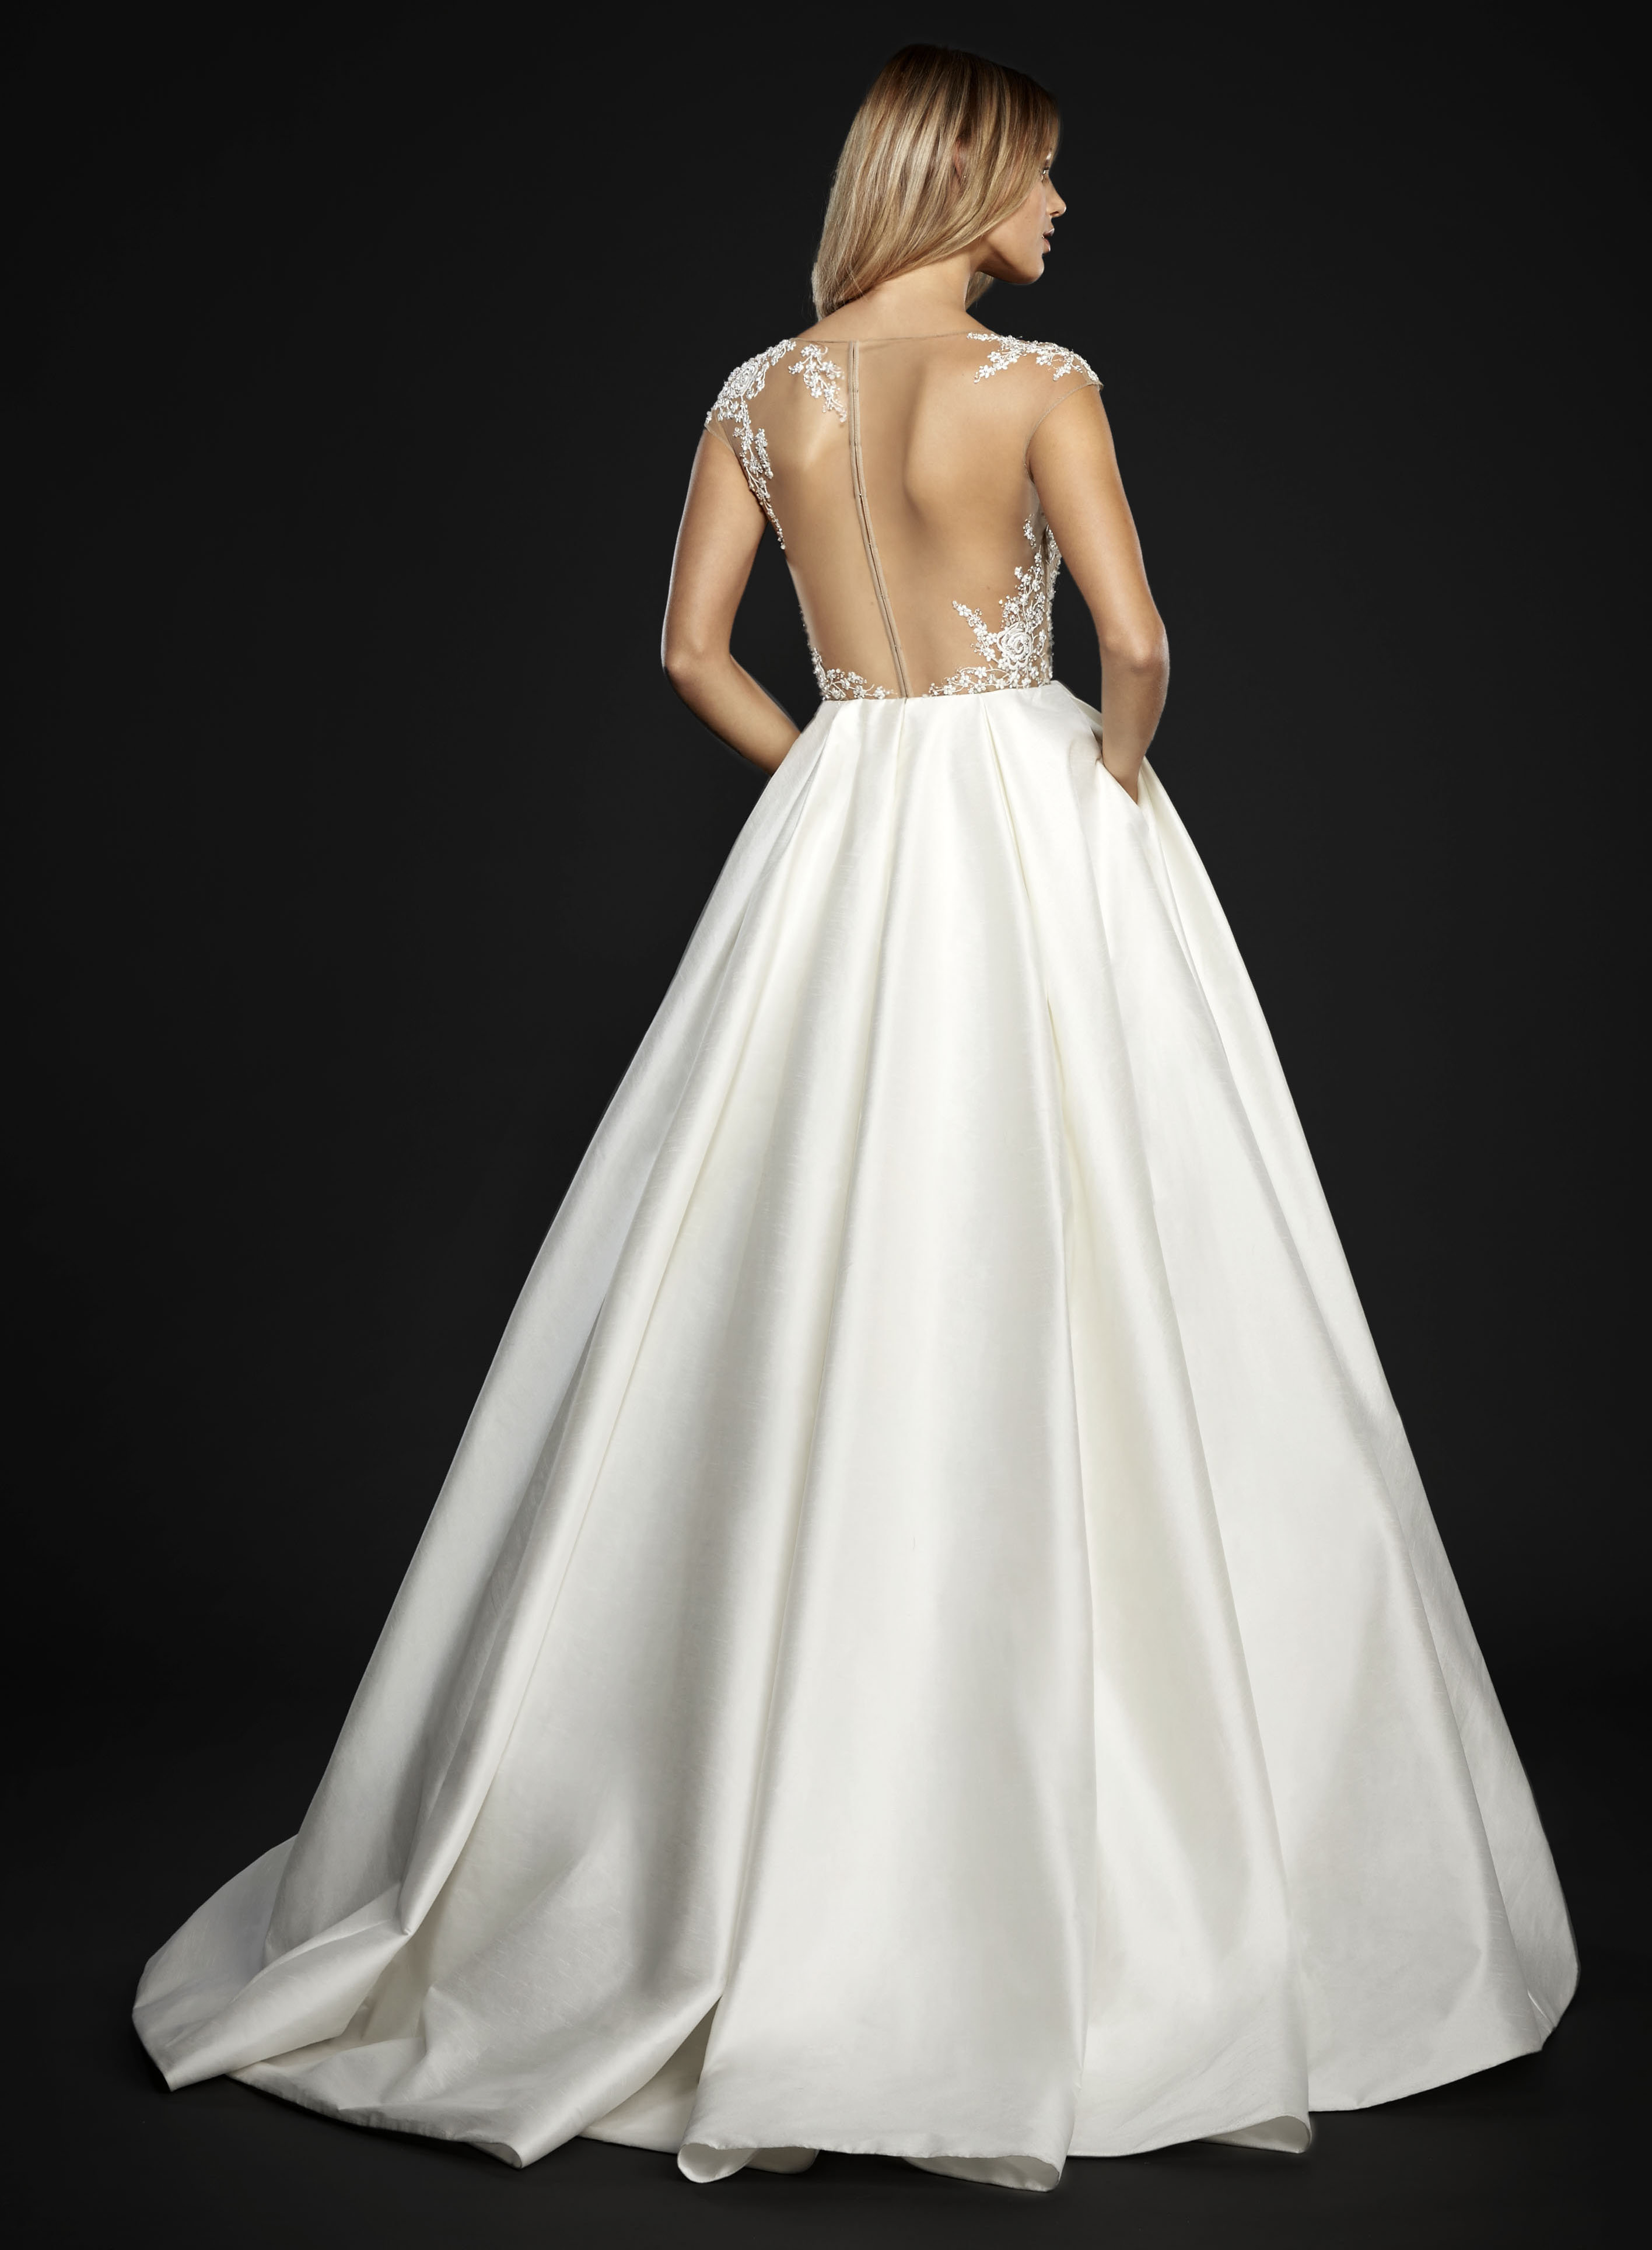 Bridal Gowns and Wedding Dresses by JLM Couture - Style 6705 Chandler